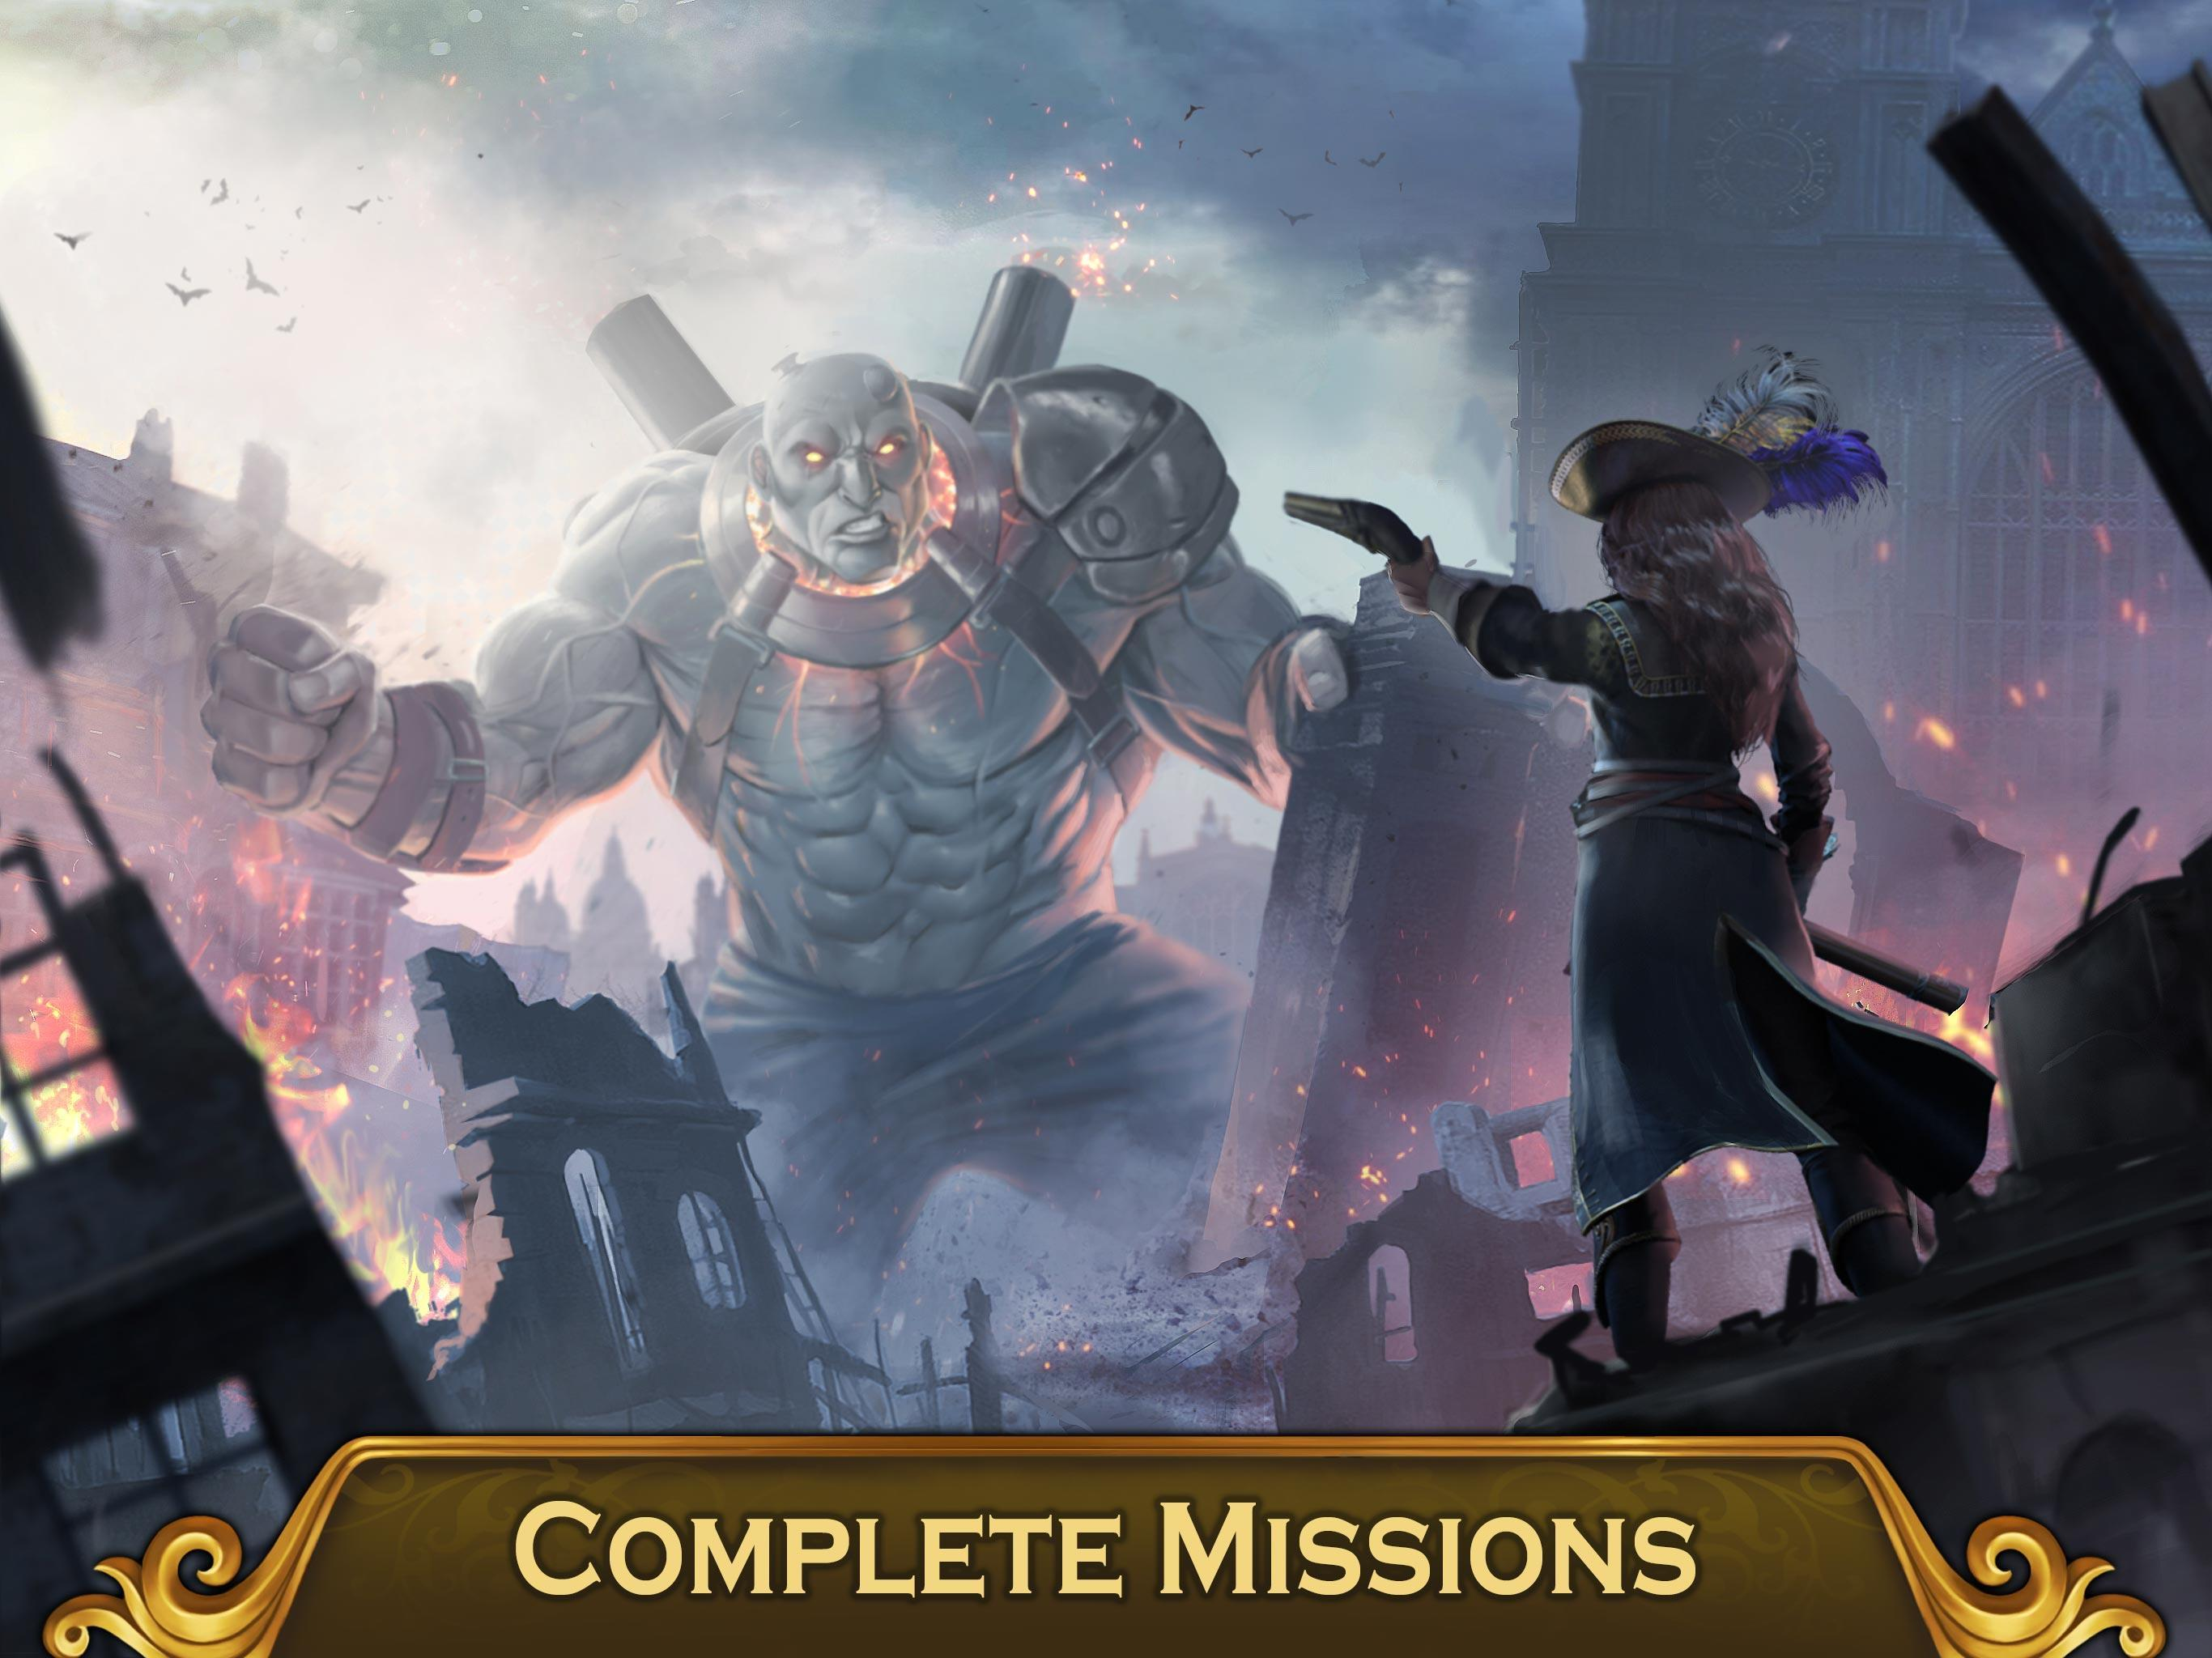 Guns of Glory Build an Epic Army for the Kingdom 4.3.3 Screenshot 7